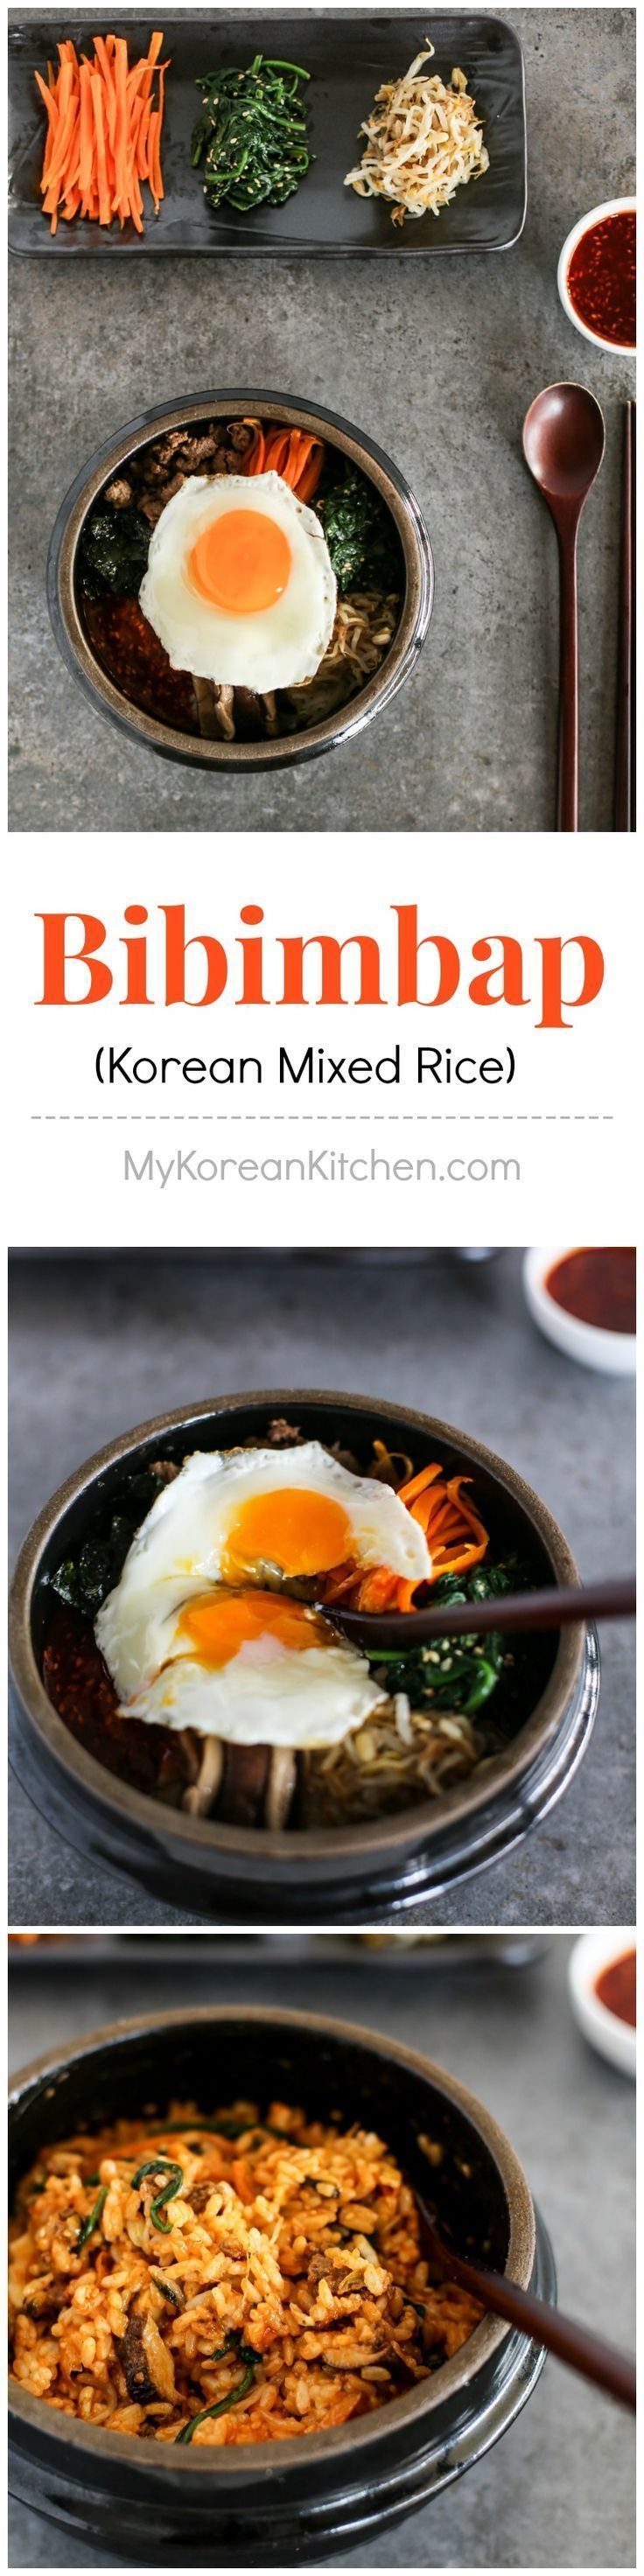 how to make that spicy fish side dish korea